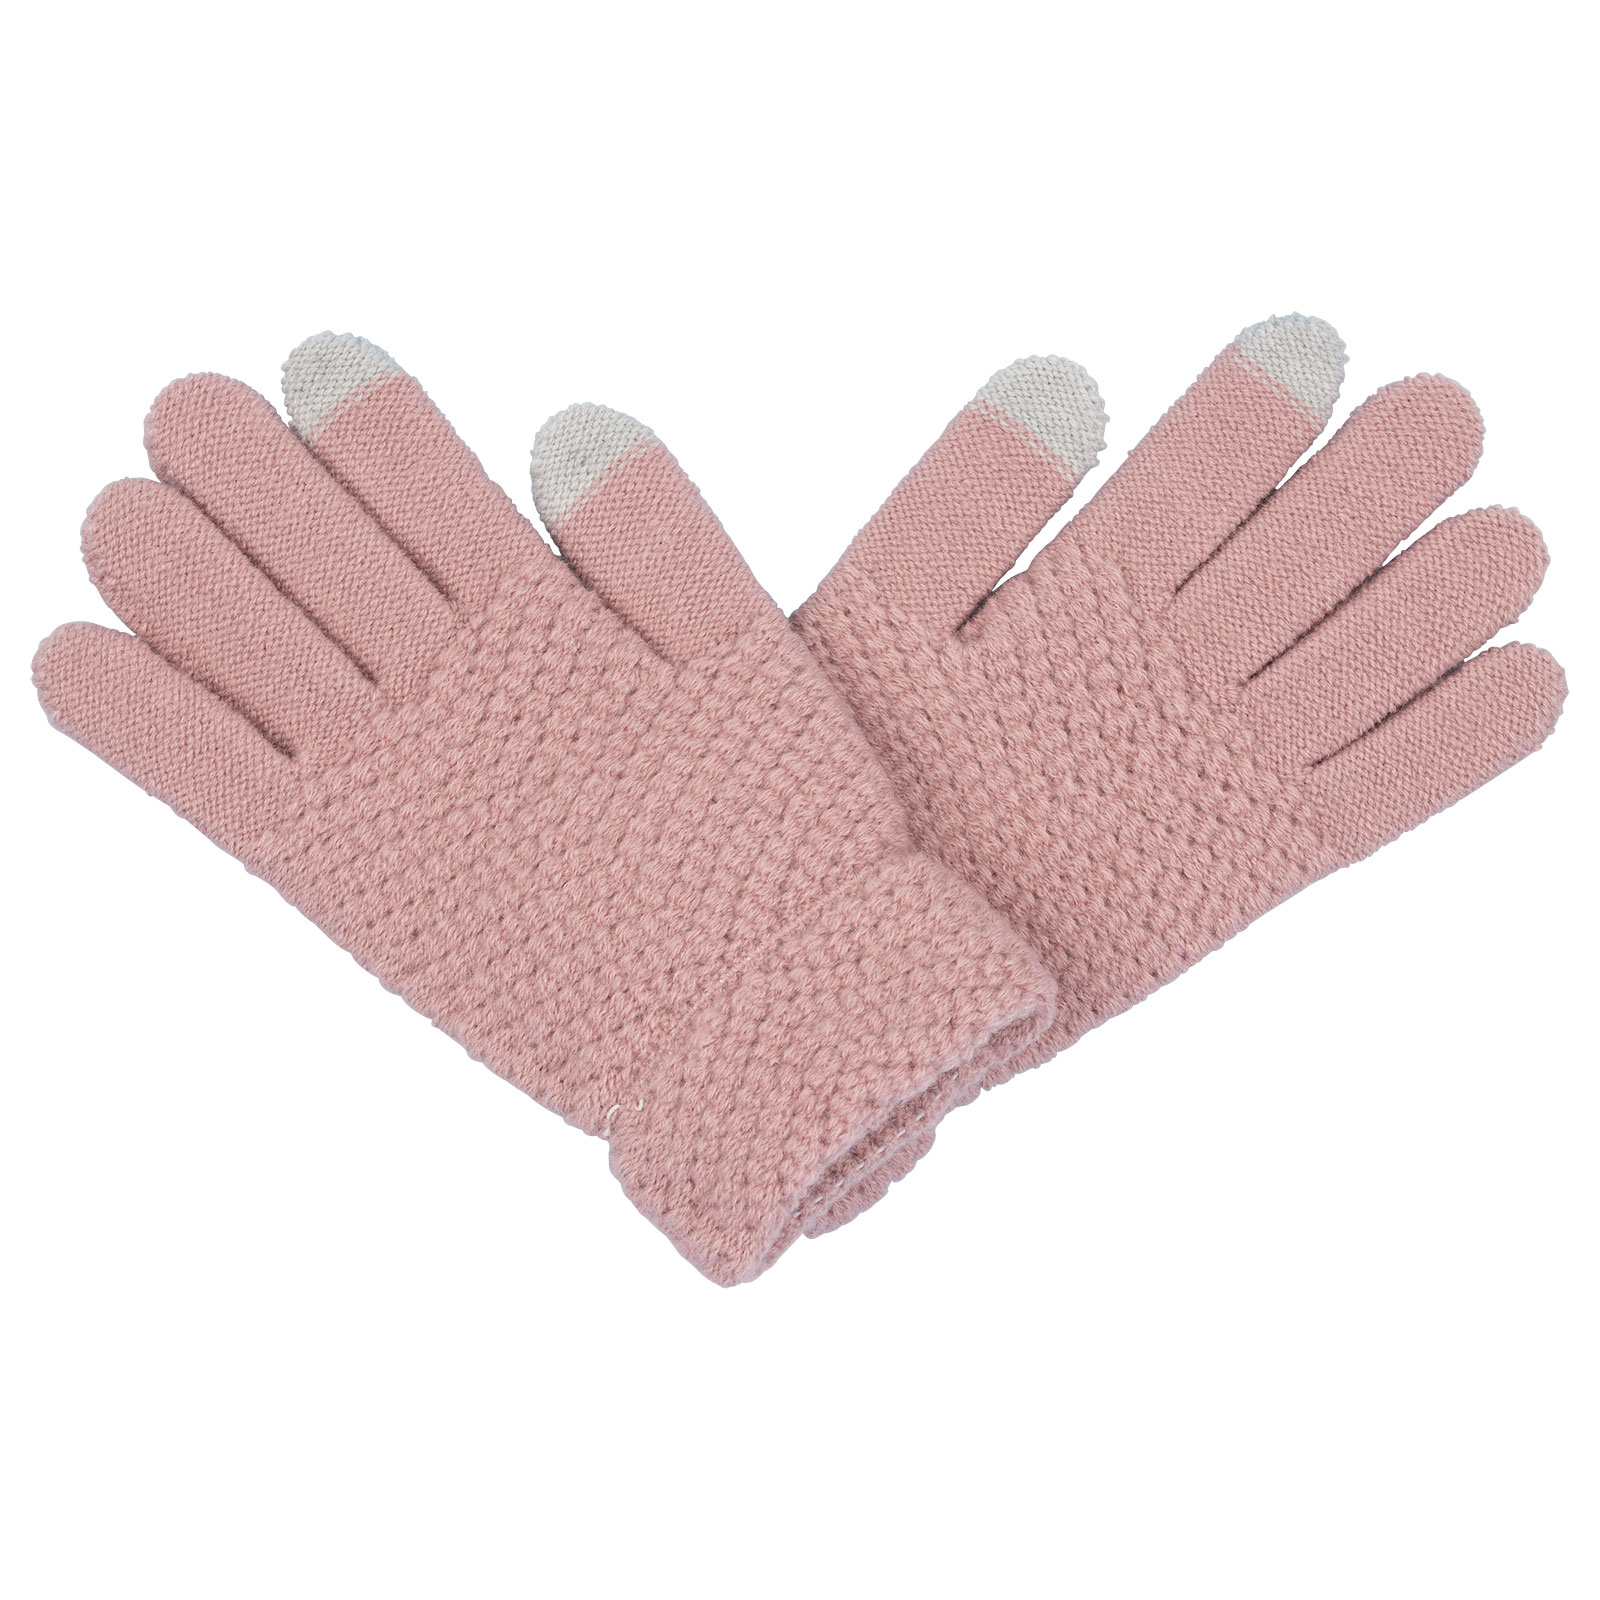 Touch gloves dam -  ljusrosa